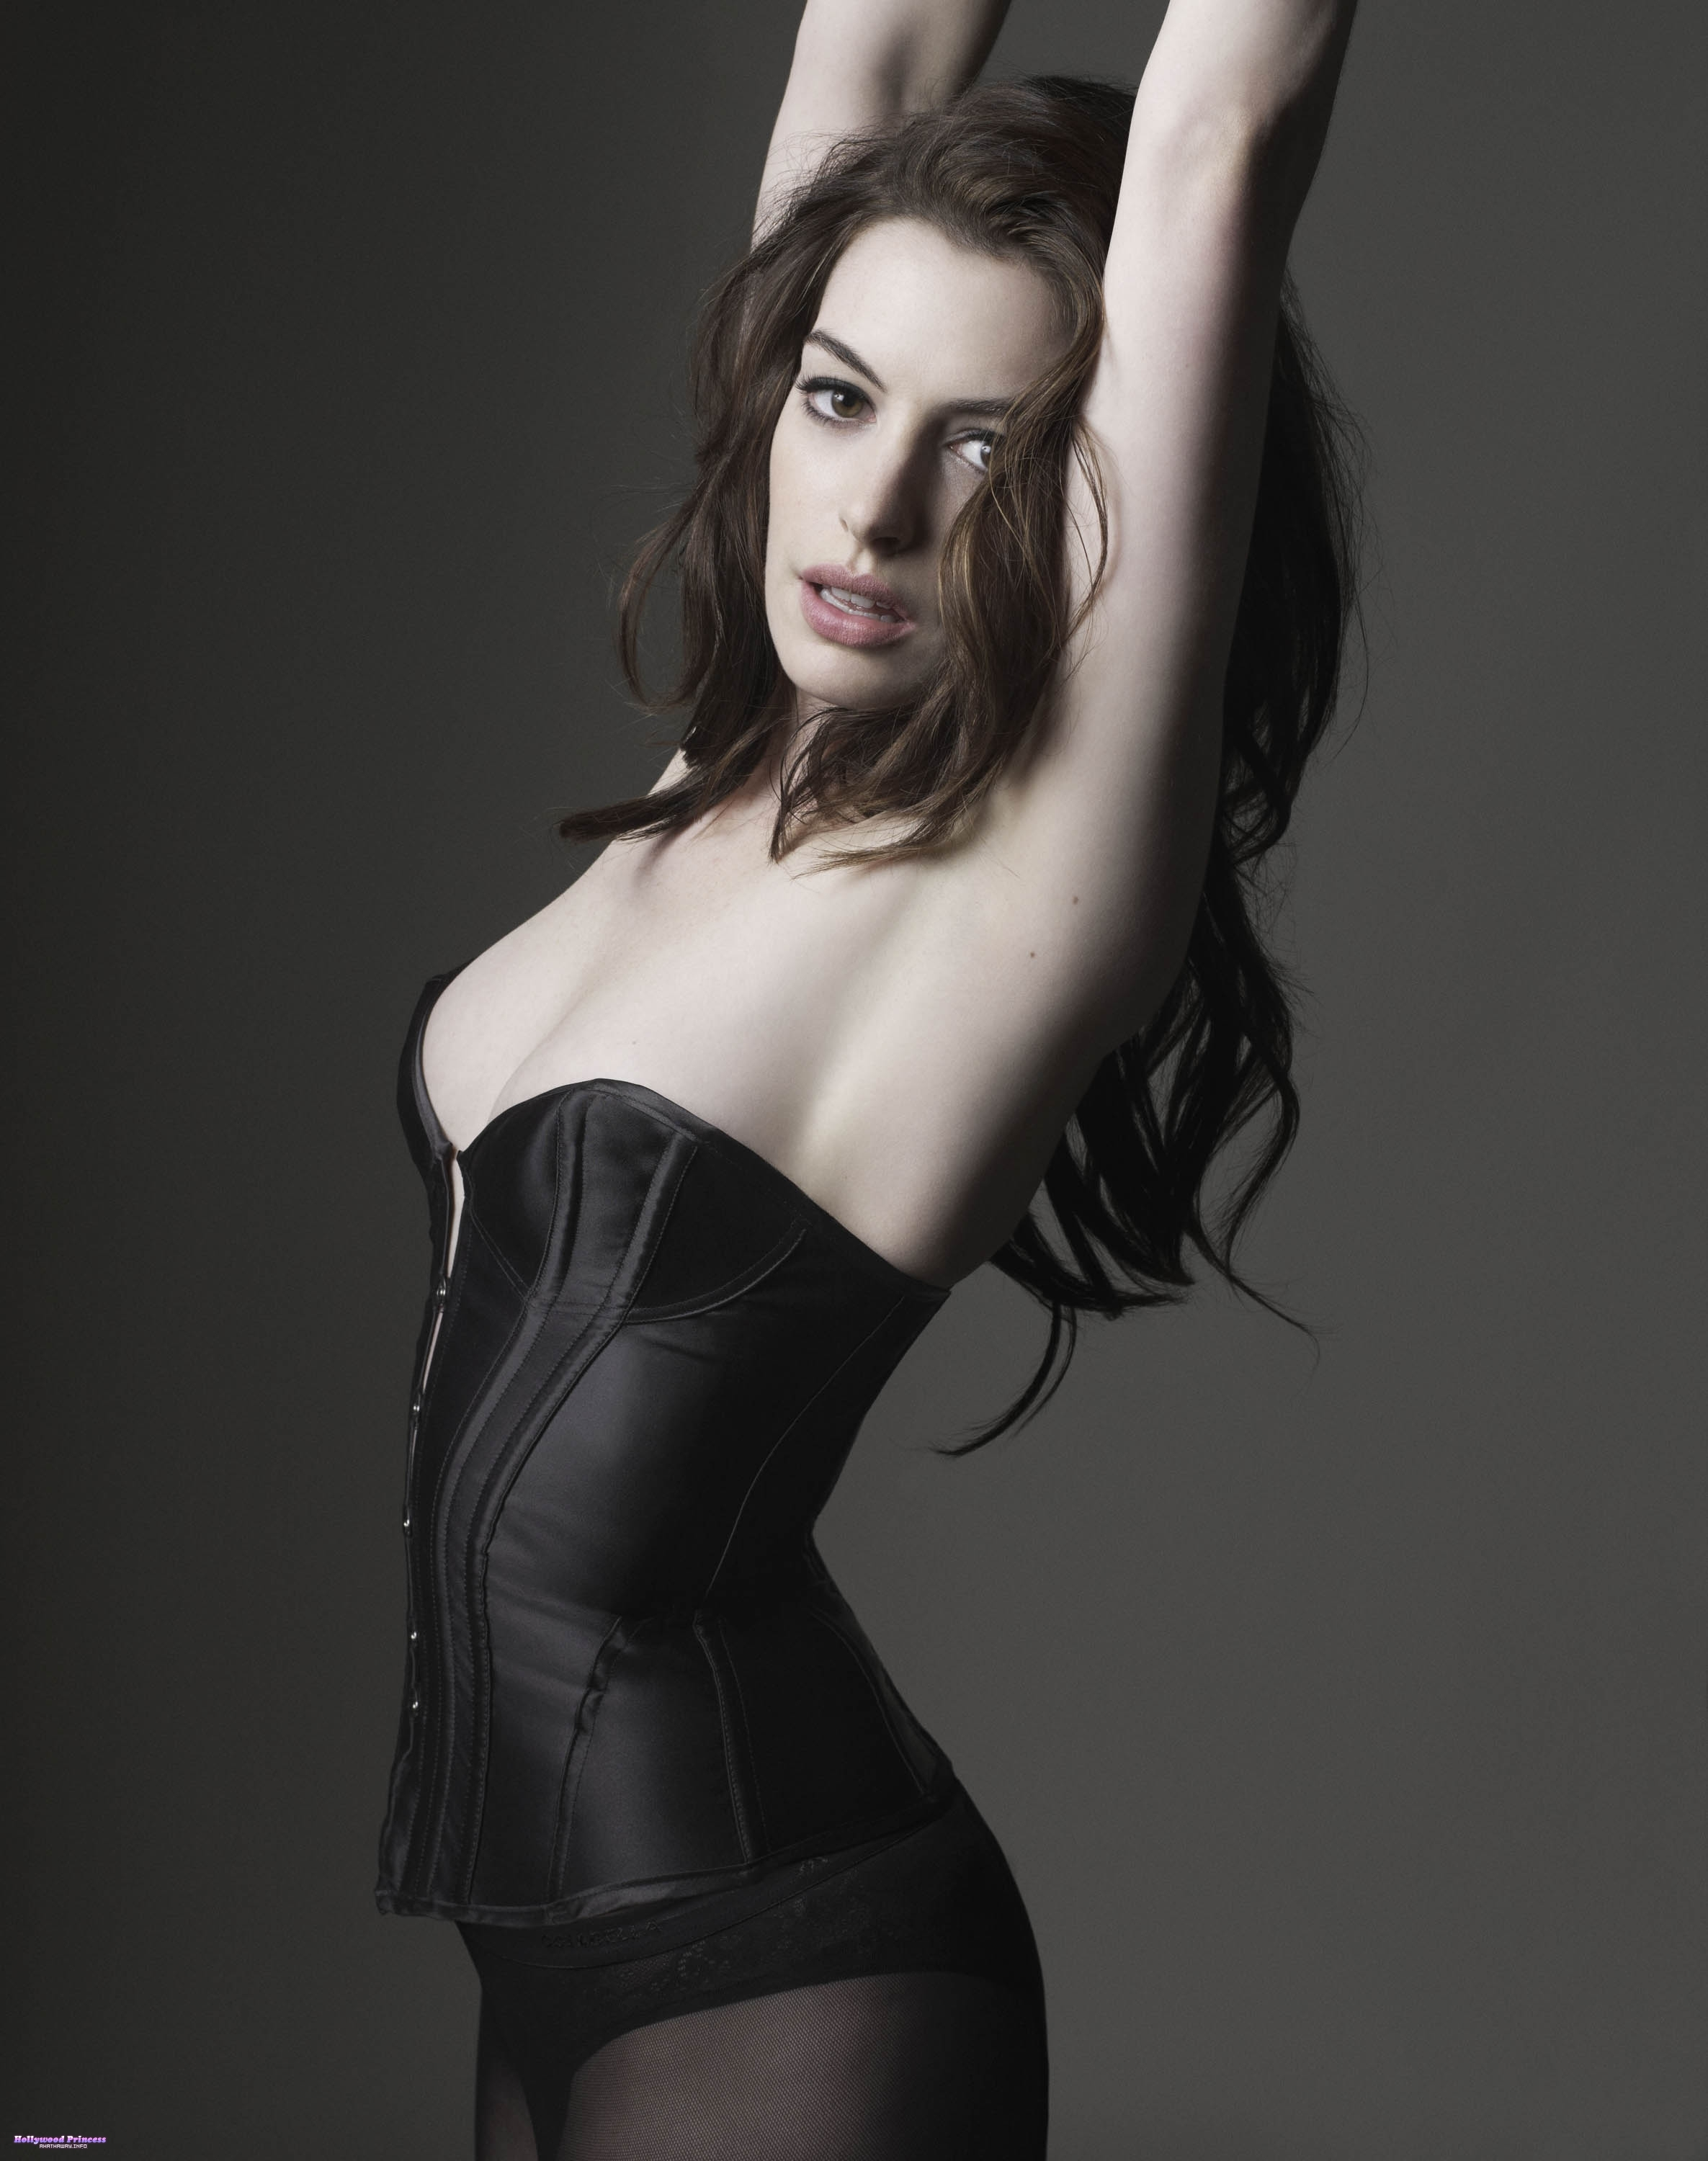 Women anne hathaway girl HD Wallpaper